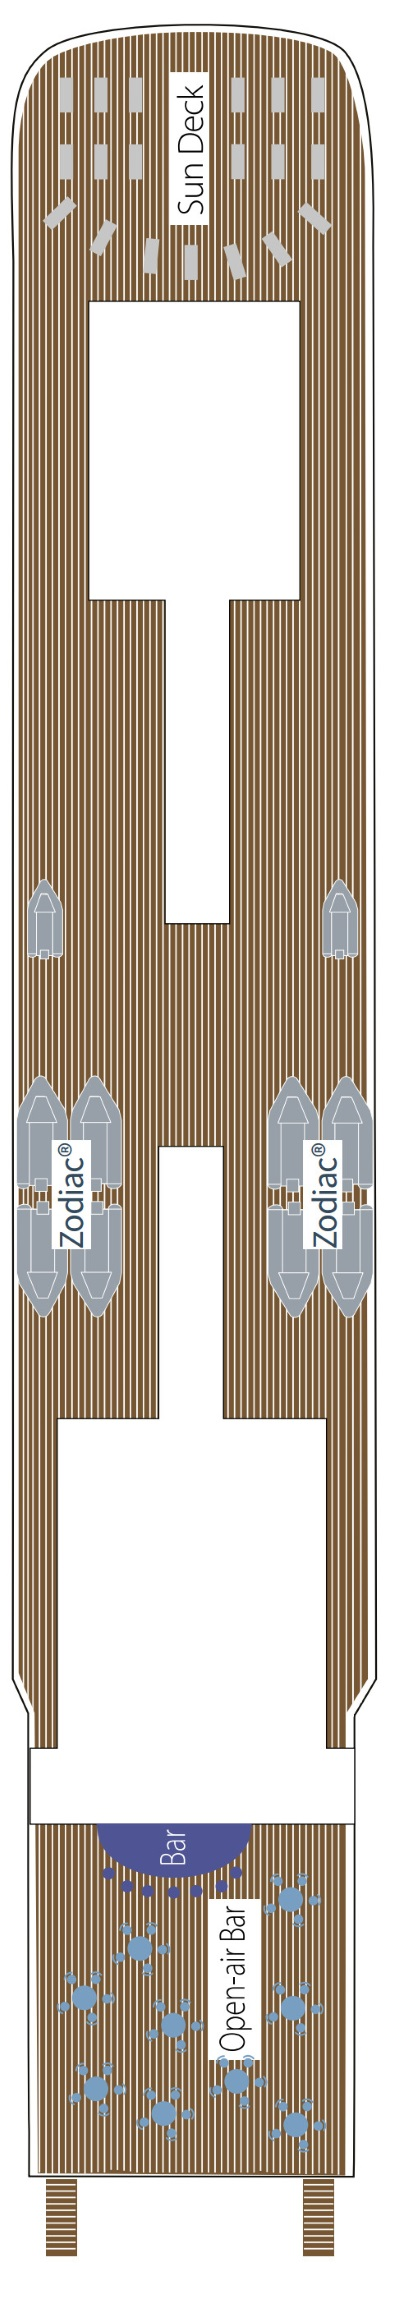 Le Soleal Deck 7 layout